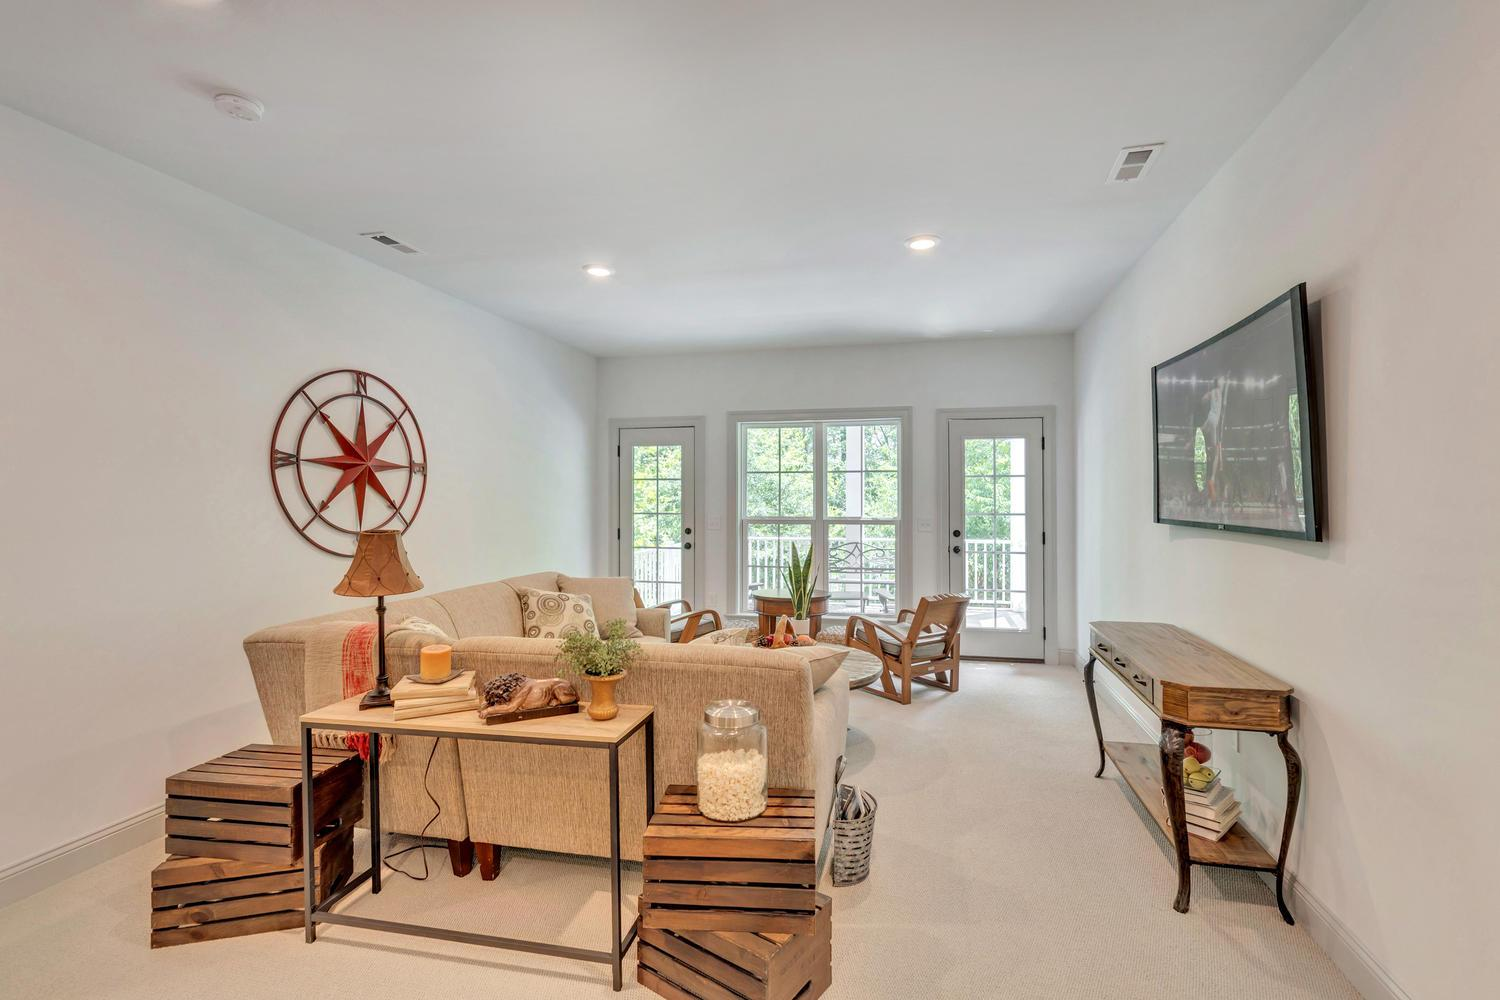 Living Area featured in the Old Trail Townes By Craig Builders in Charlottesville, VA